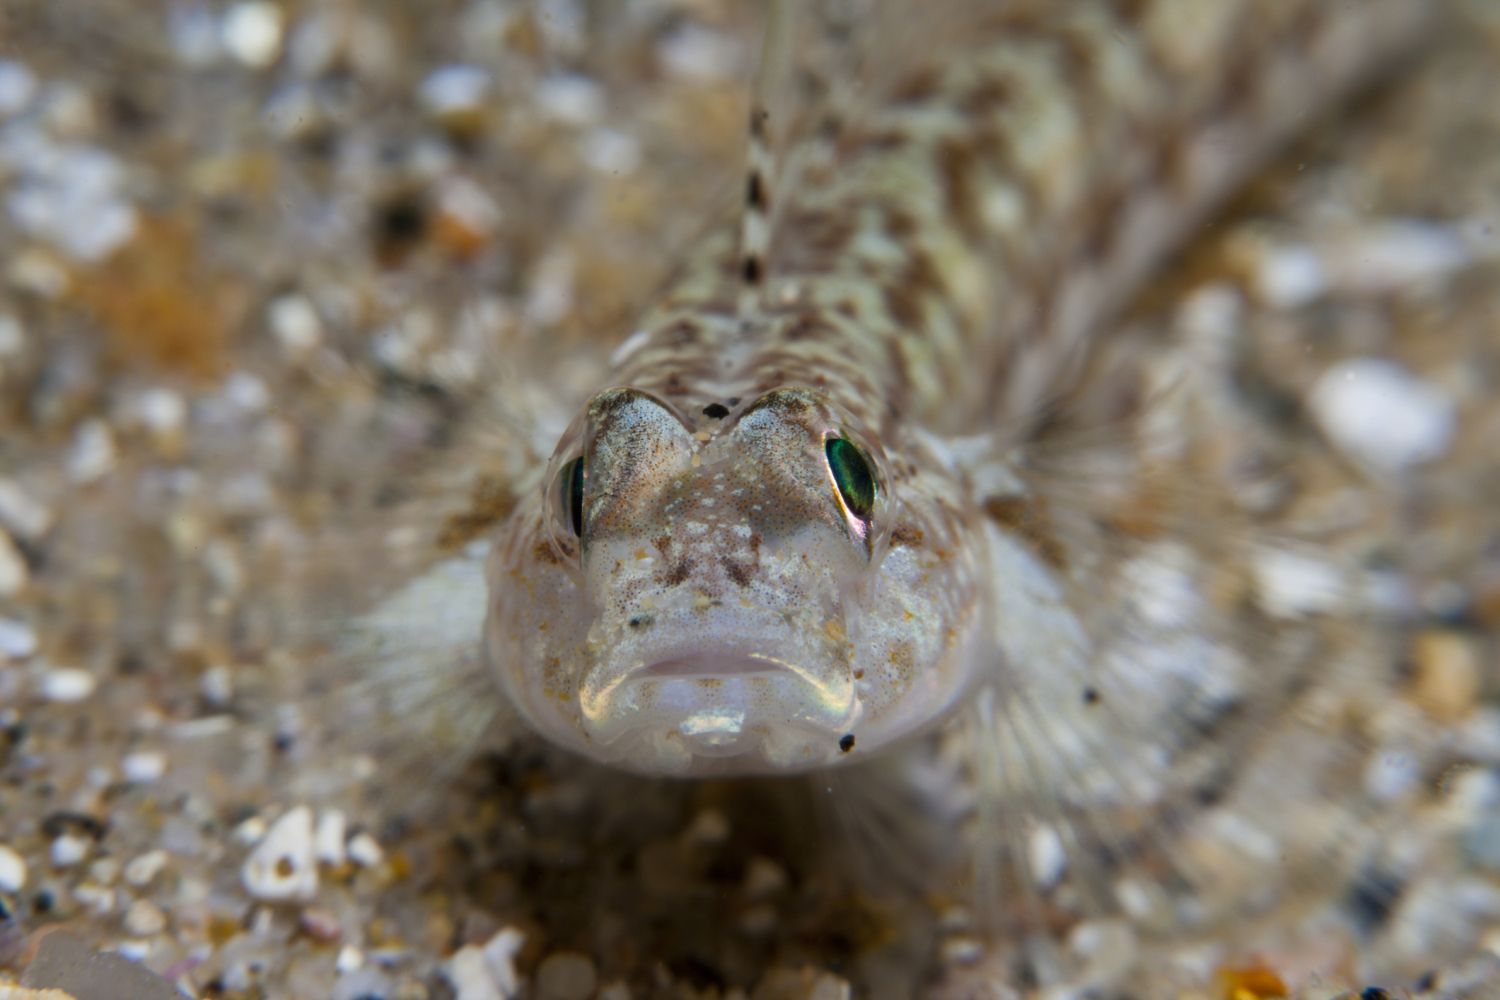 Male sand gobies sometimes eat their young.